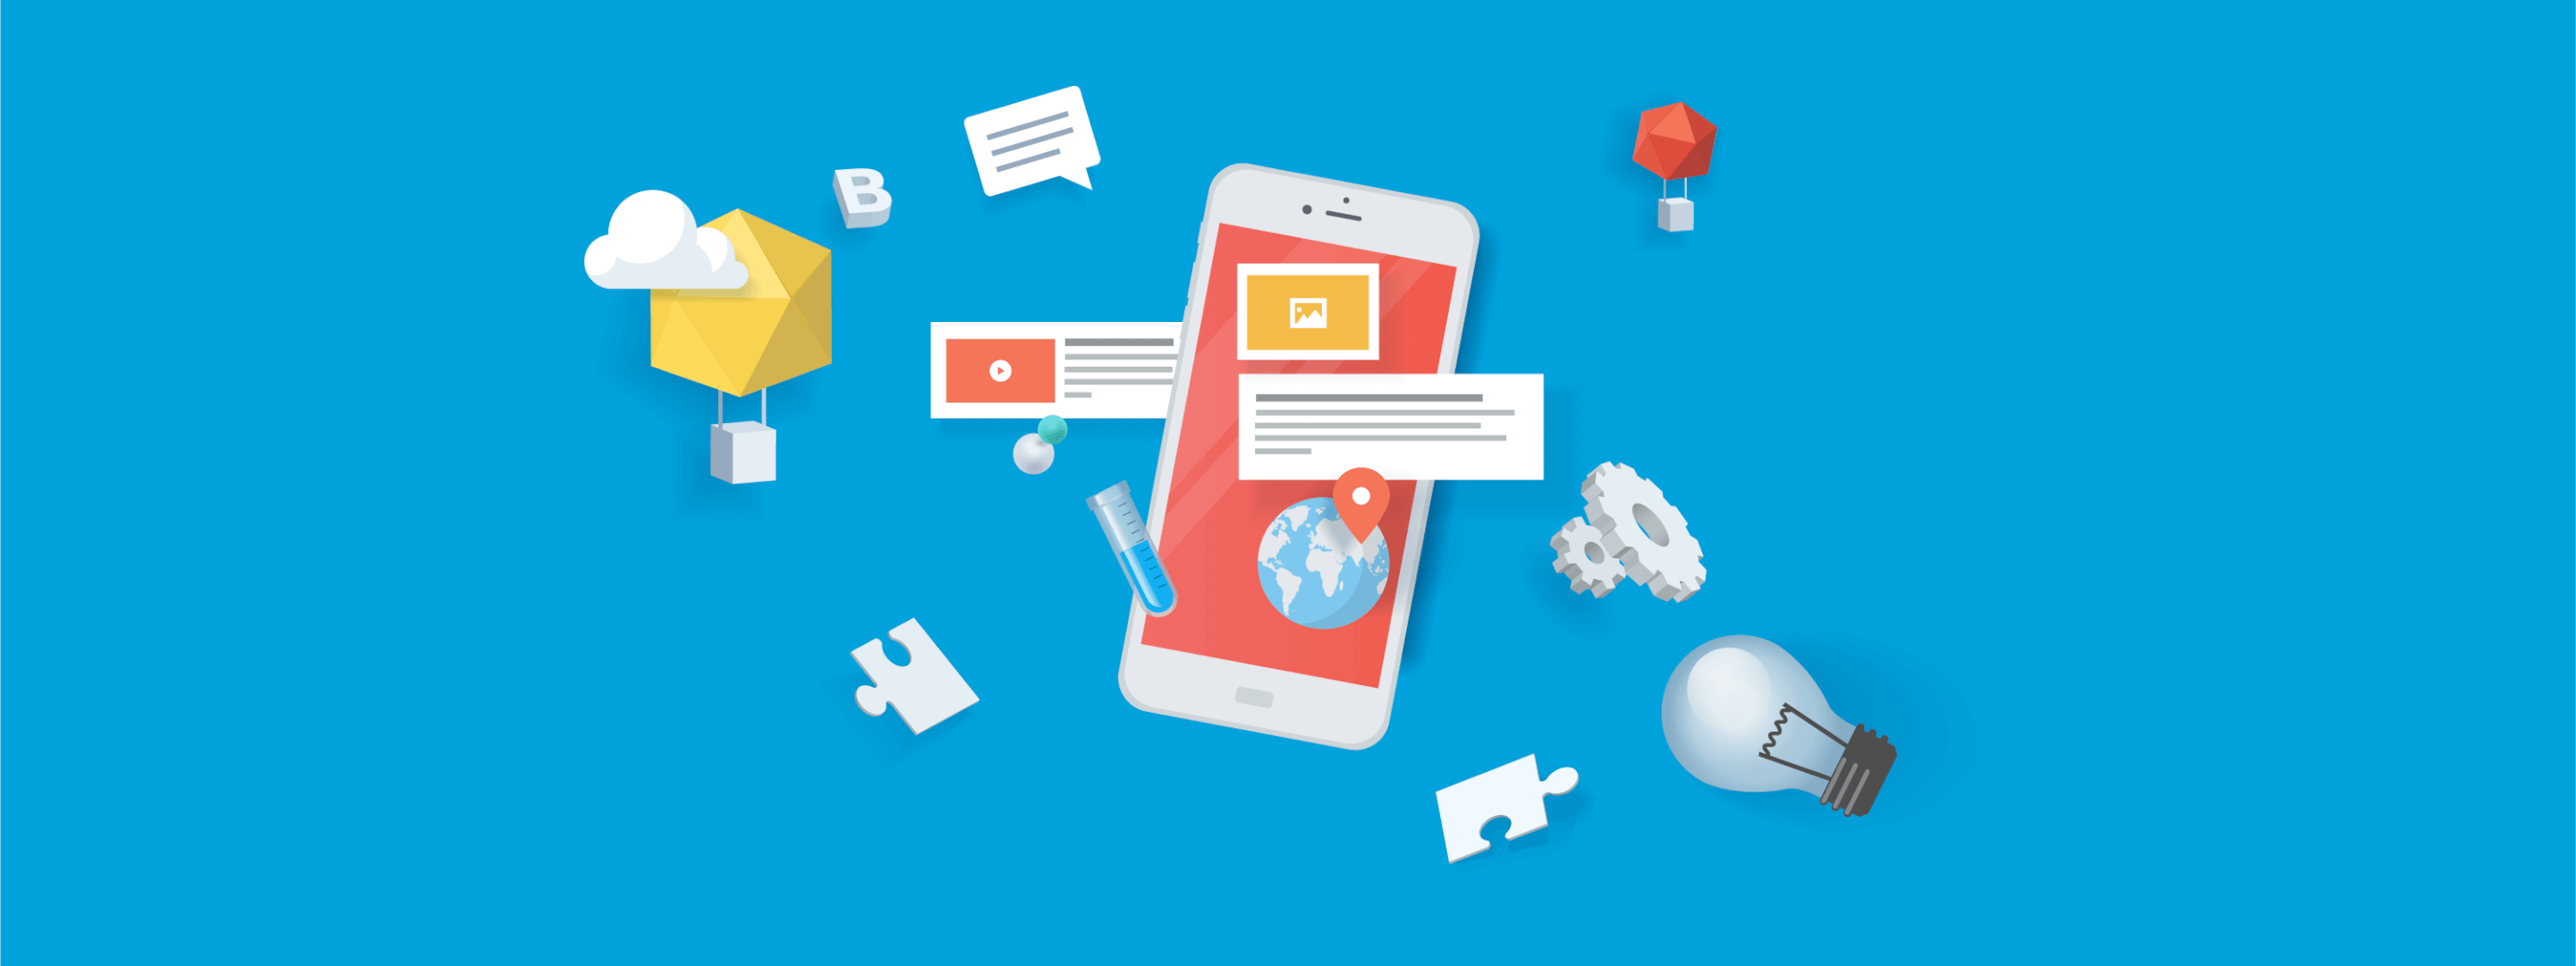 5 Elements of a Successful Mobile App Marketing Strategy